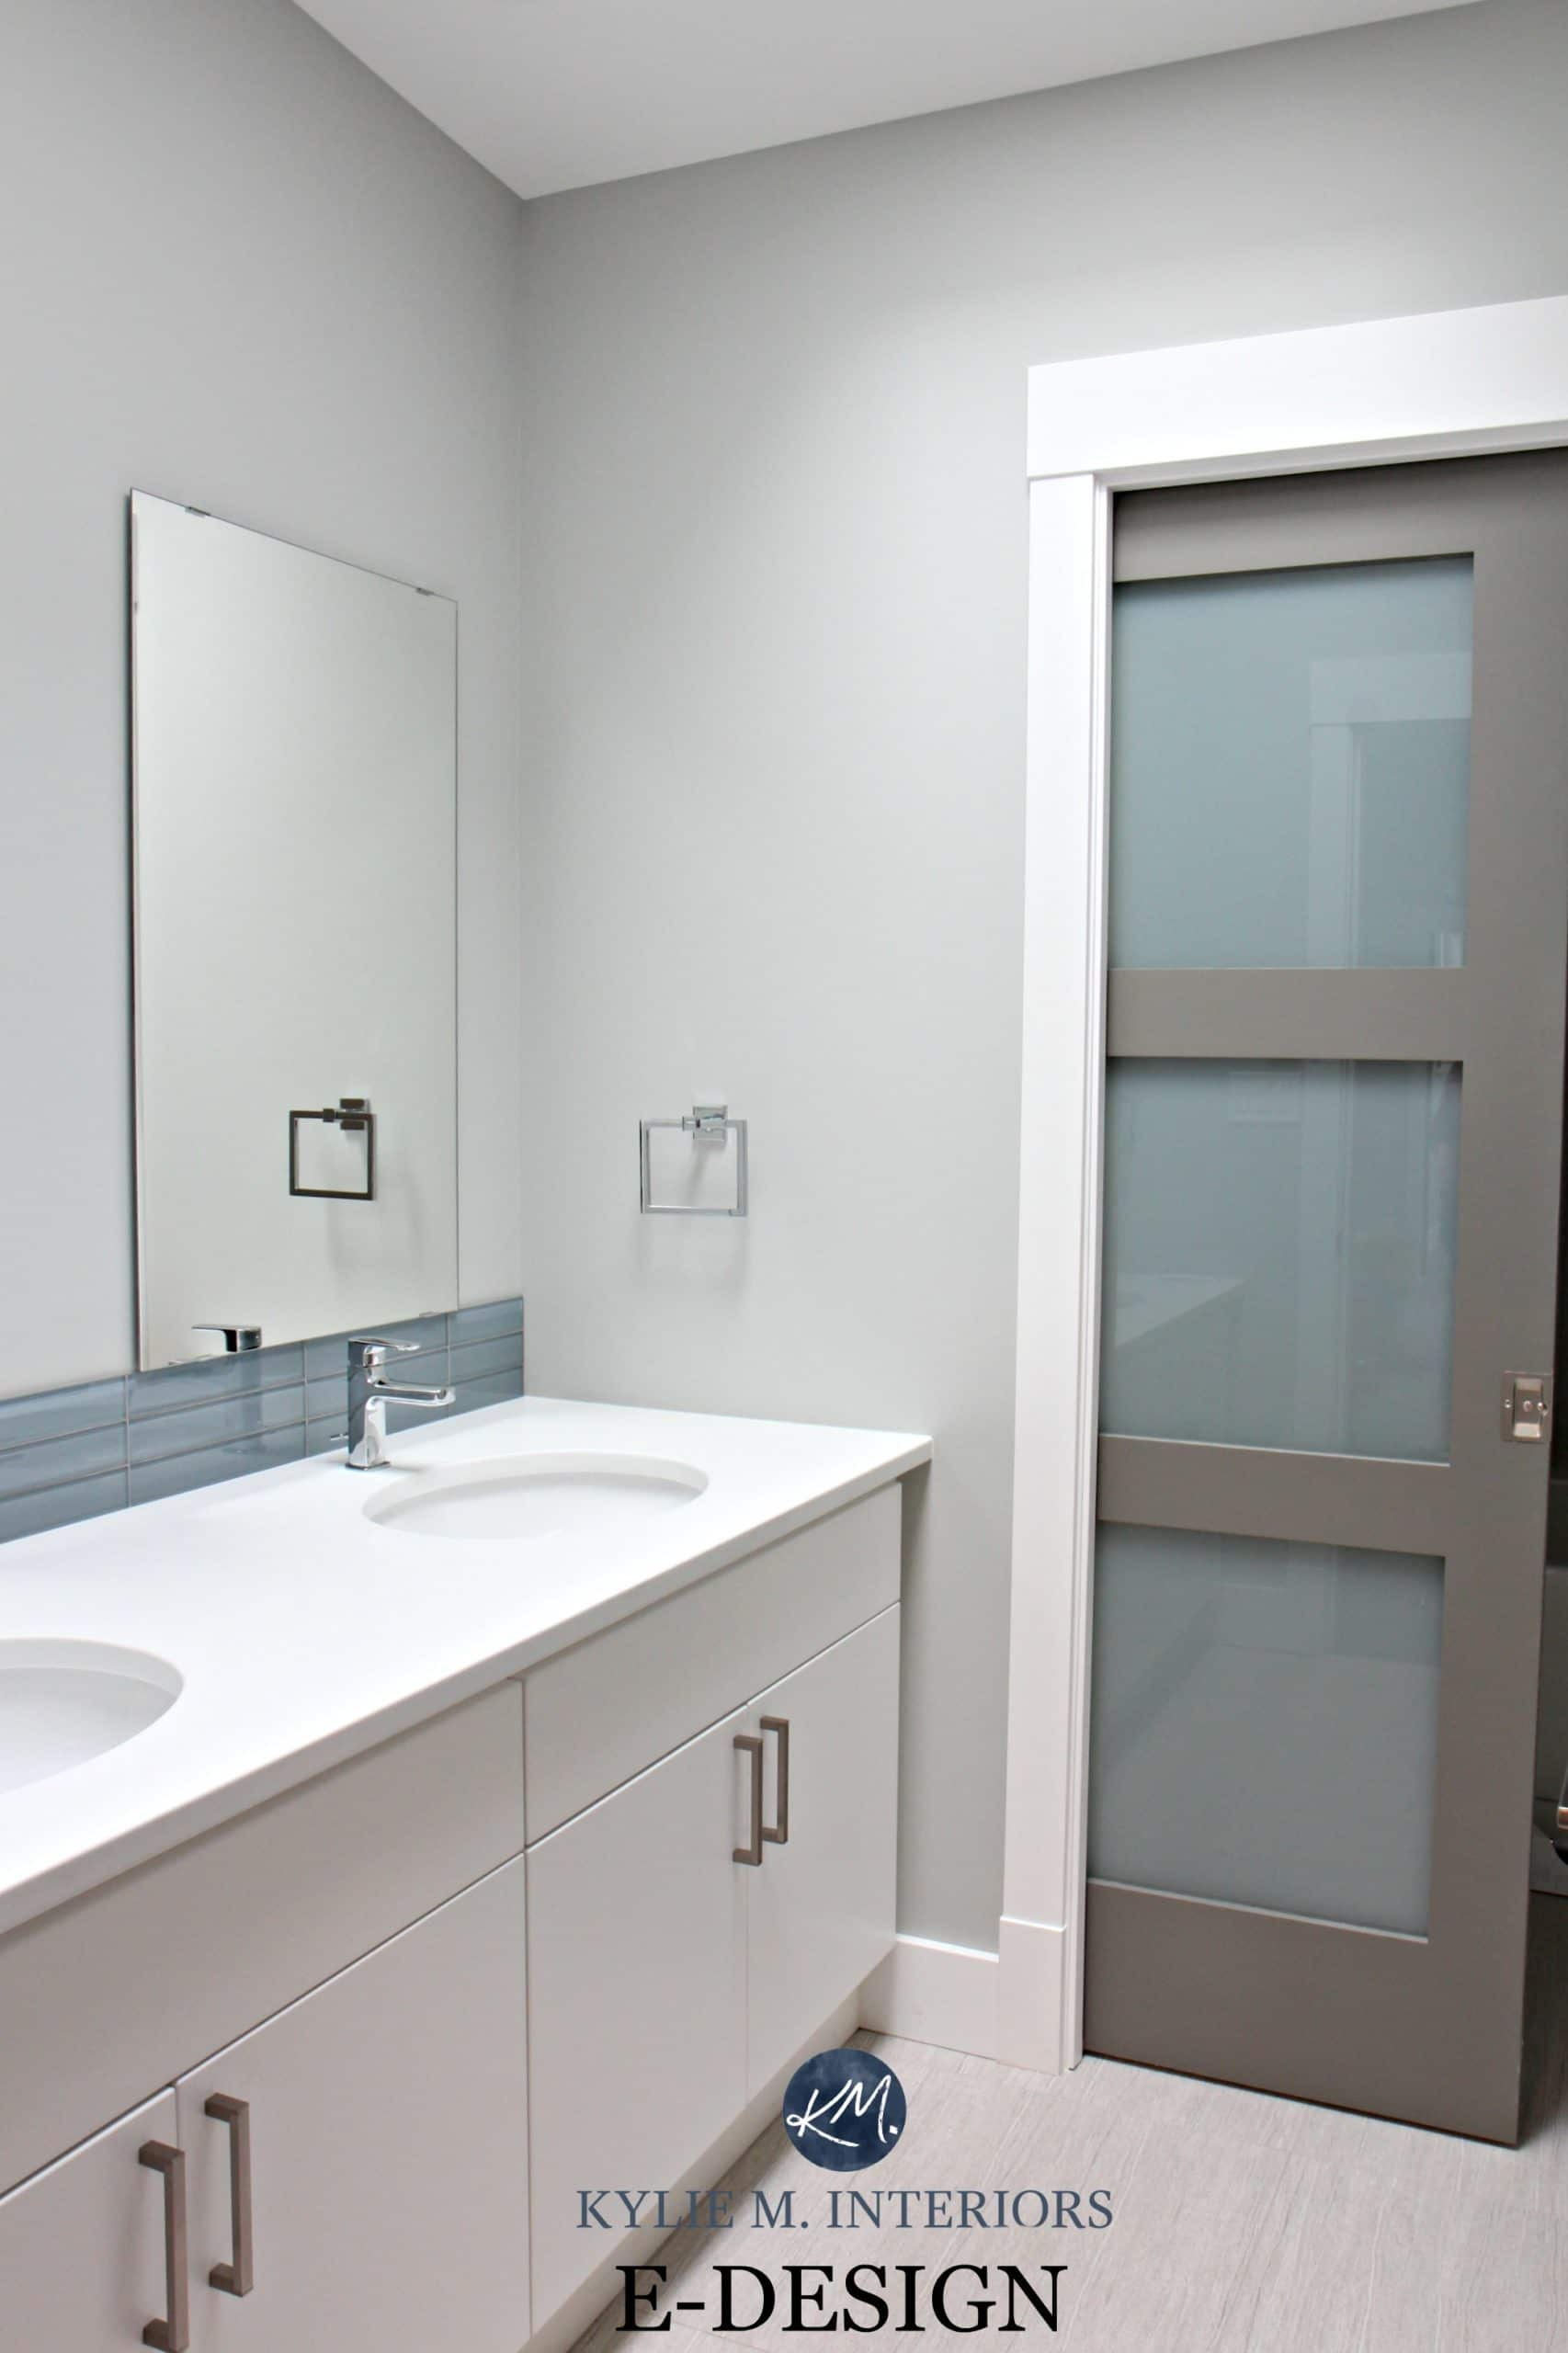 Benjamin Moore Stonington Gray And Chelsea Gray Small Bathroom, Modern. Kylie  M Interiors E Design, Colour Expert